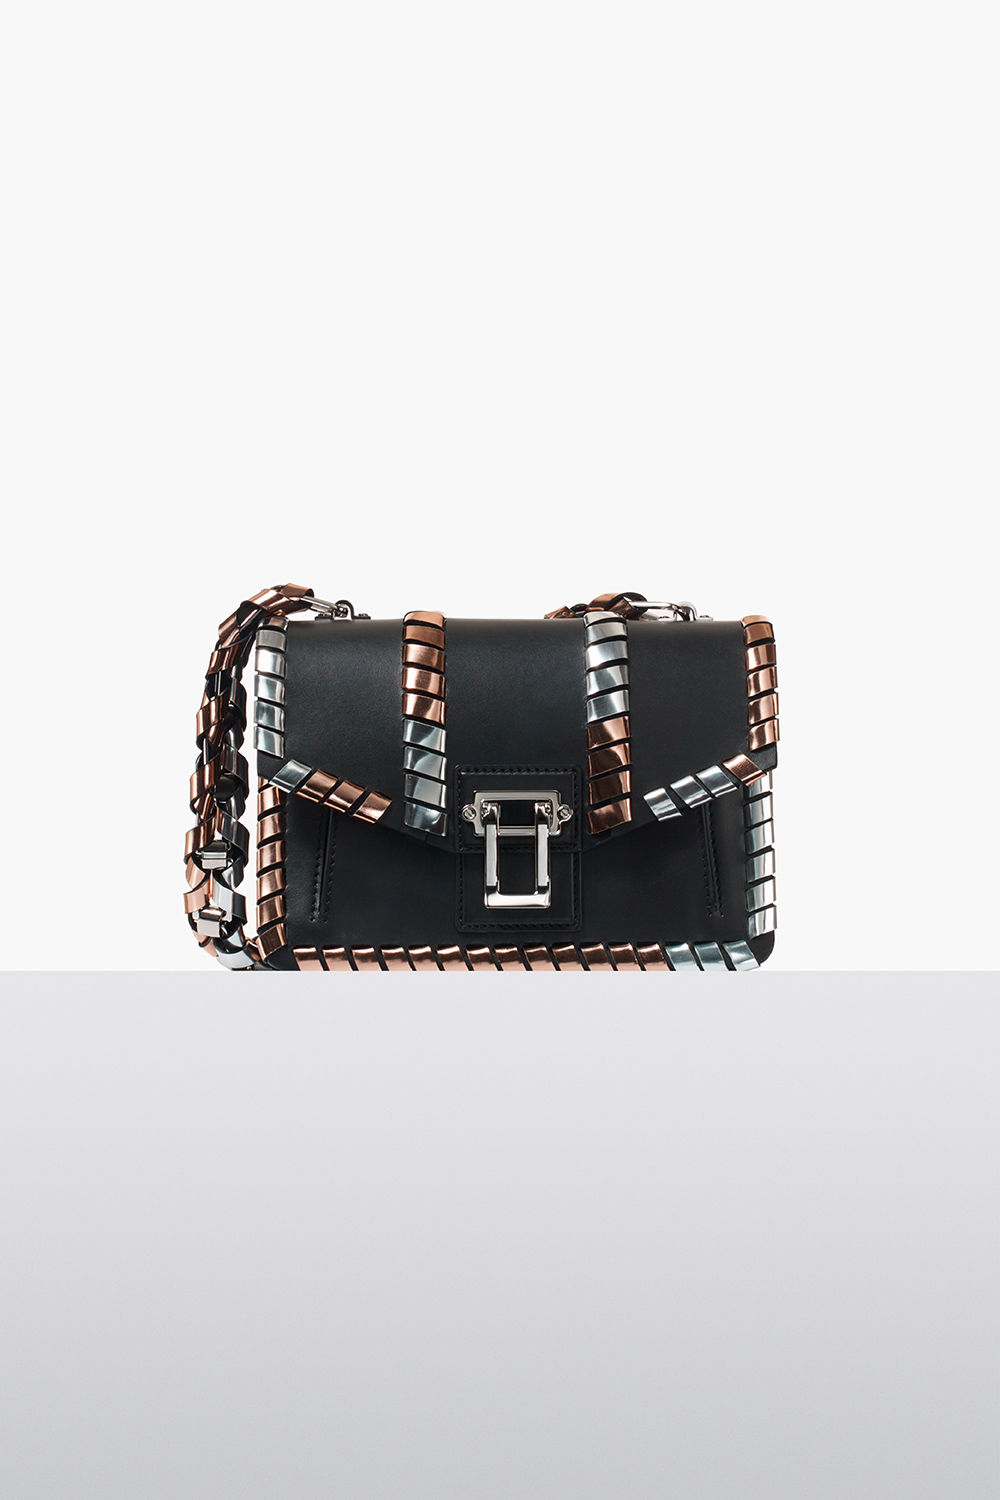 proenza schouler fall 2017 black textured grainy leather curl bag with hardware embellishment